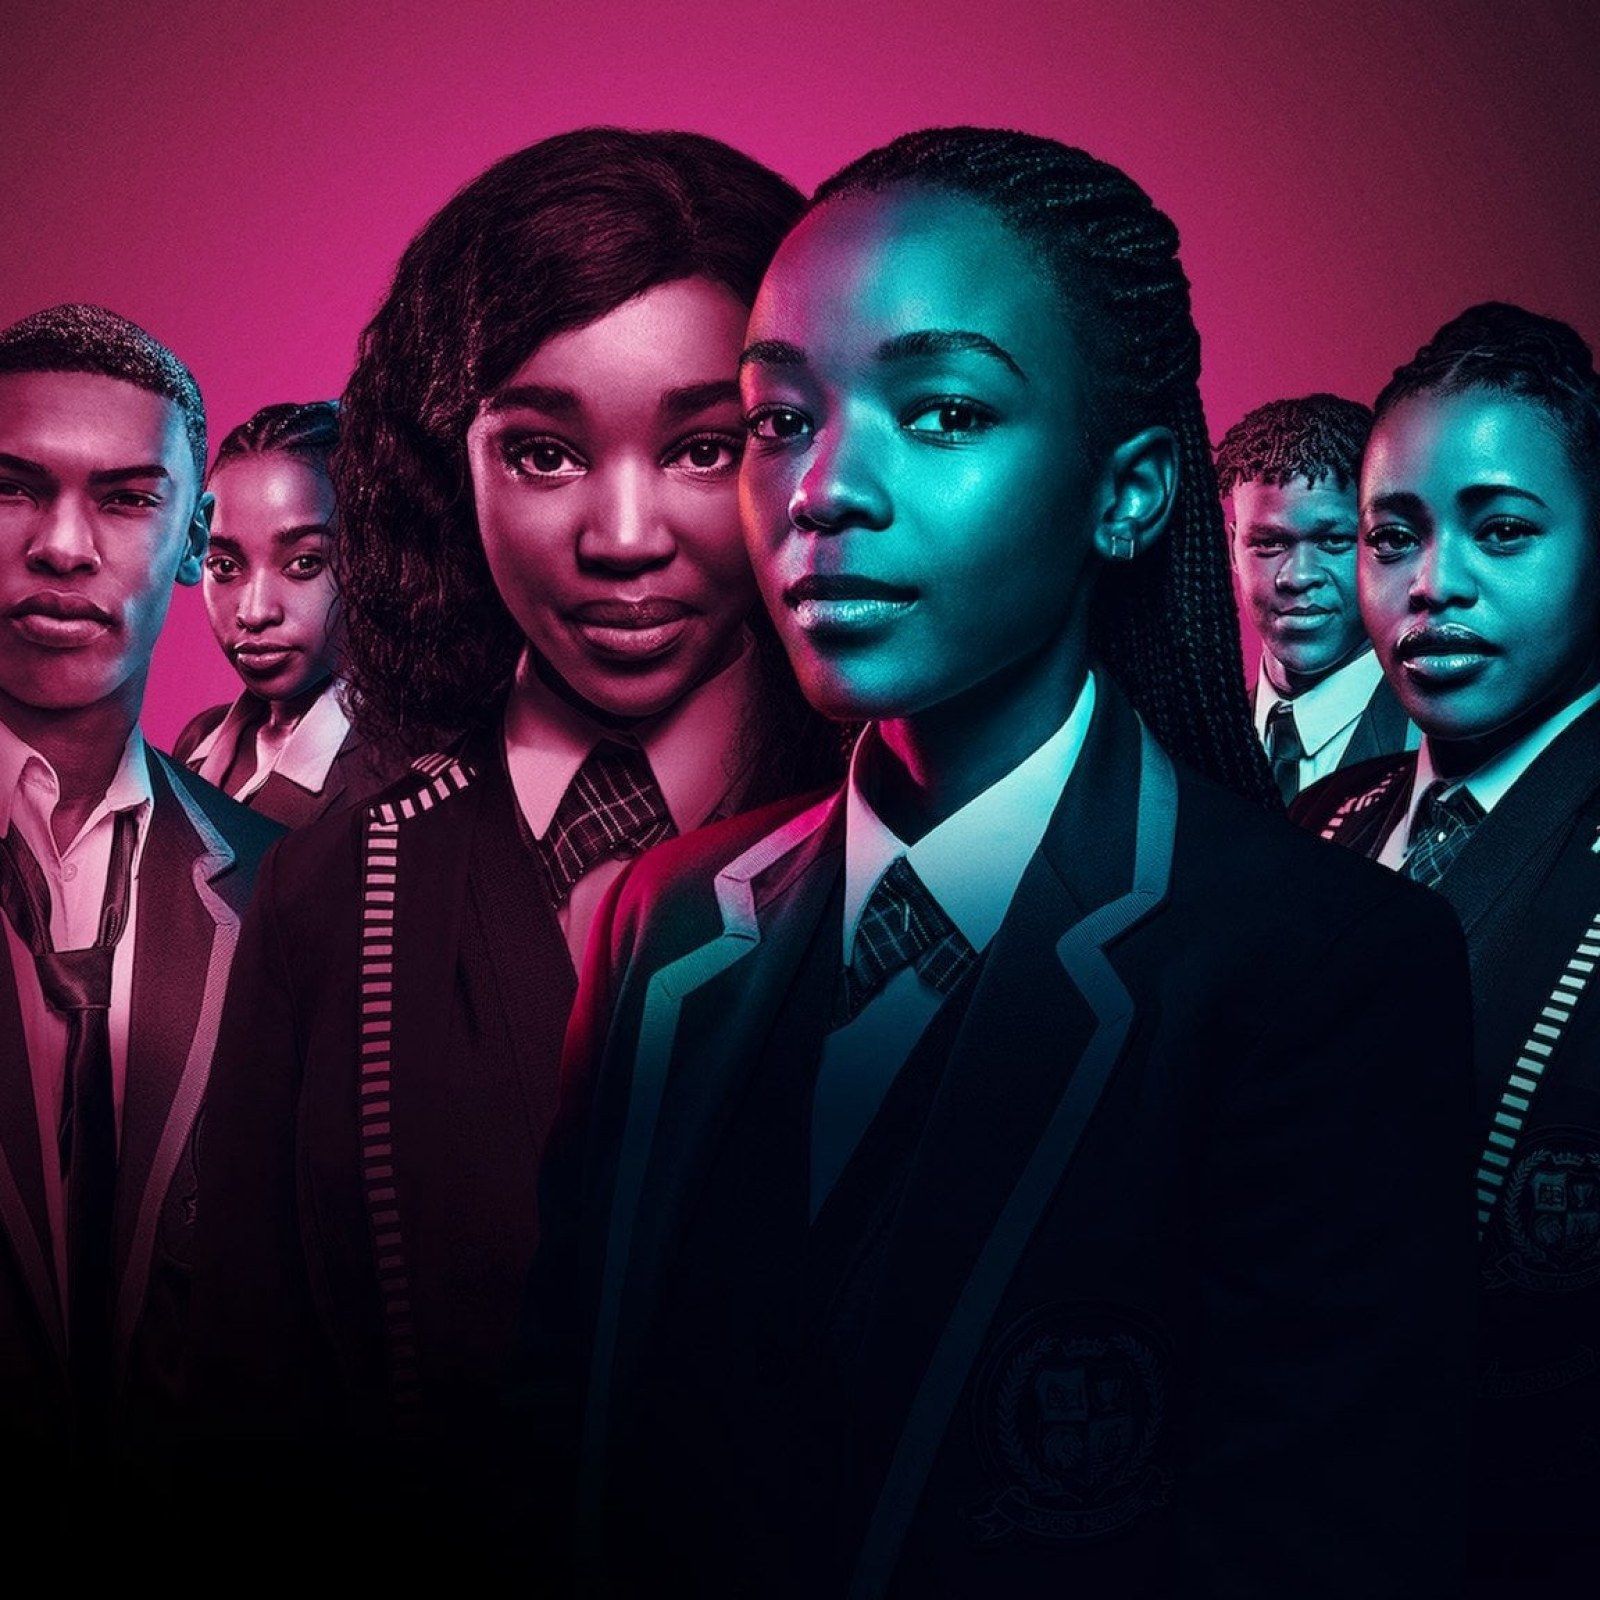 Blood & Water Season 3: What to expect